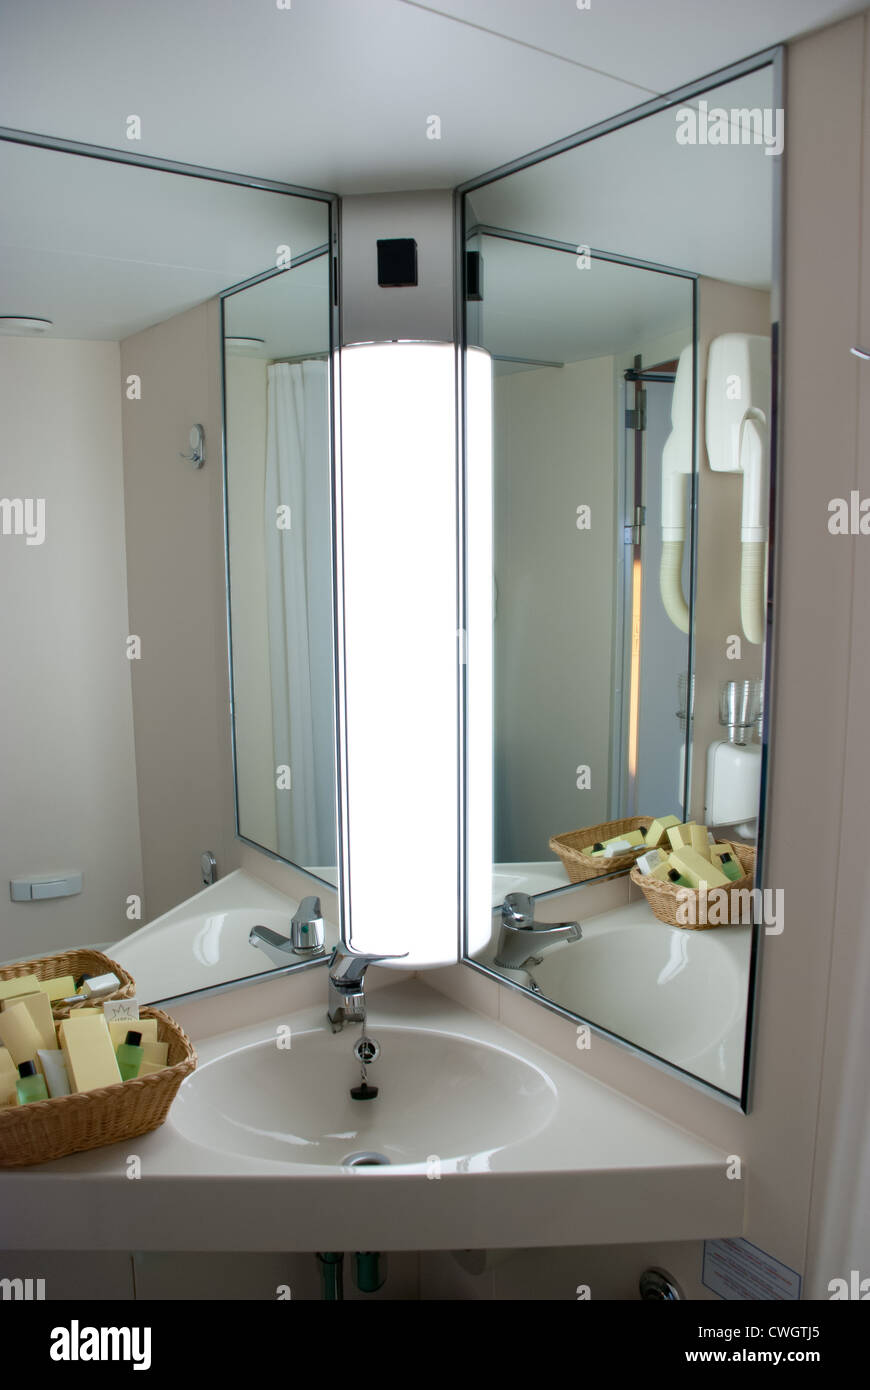 Compact Sink And Mirrors Of Cruise Ship Bathroom Stock Photo